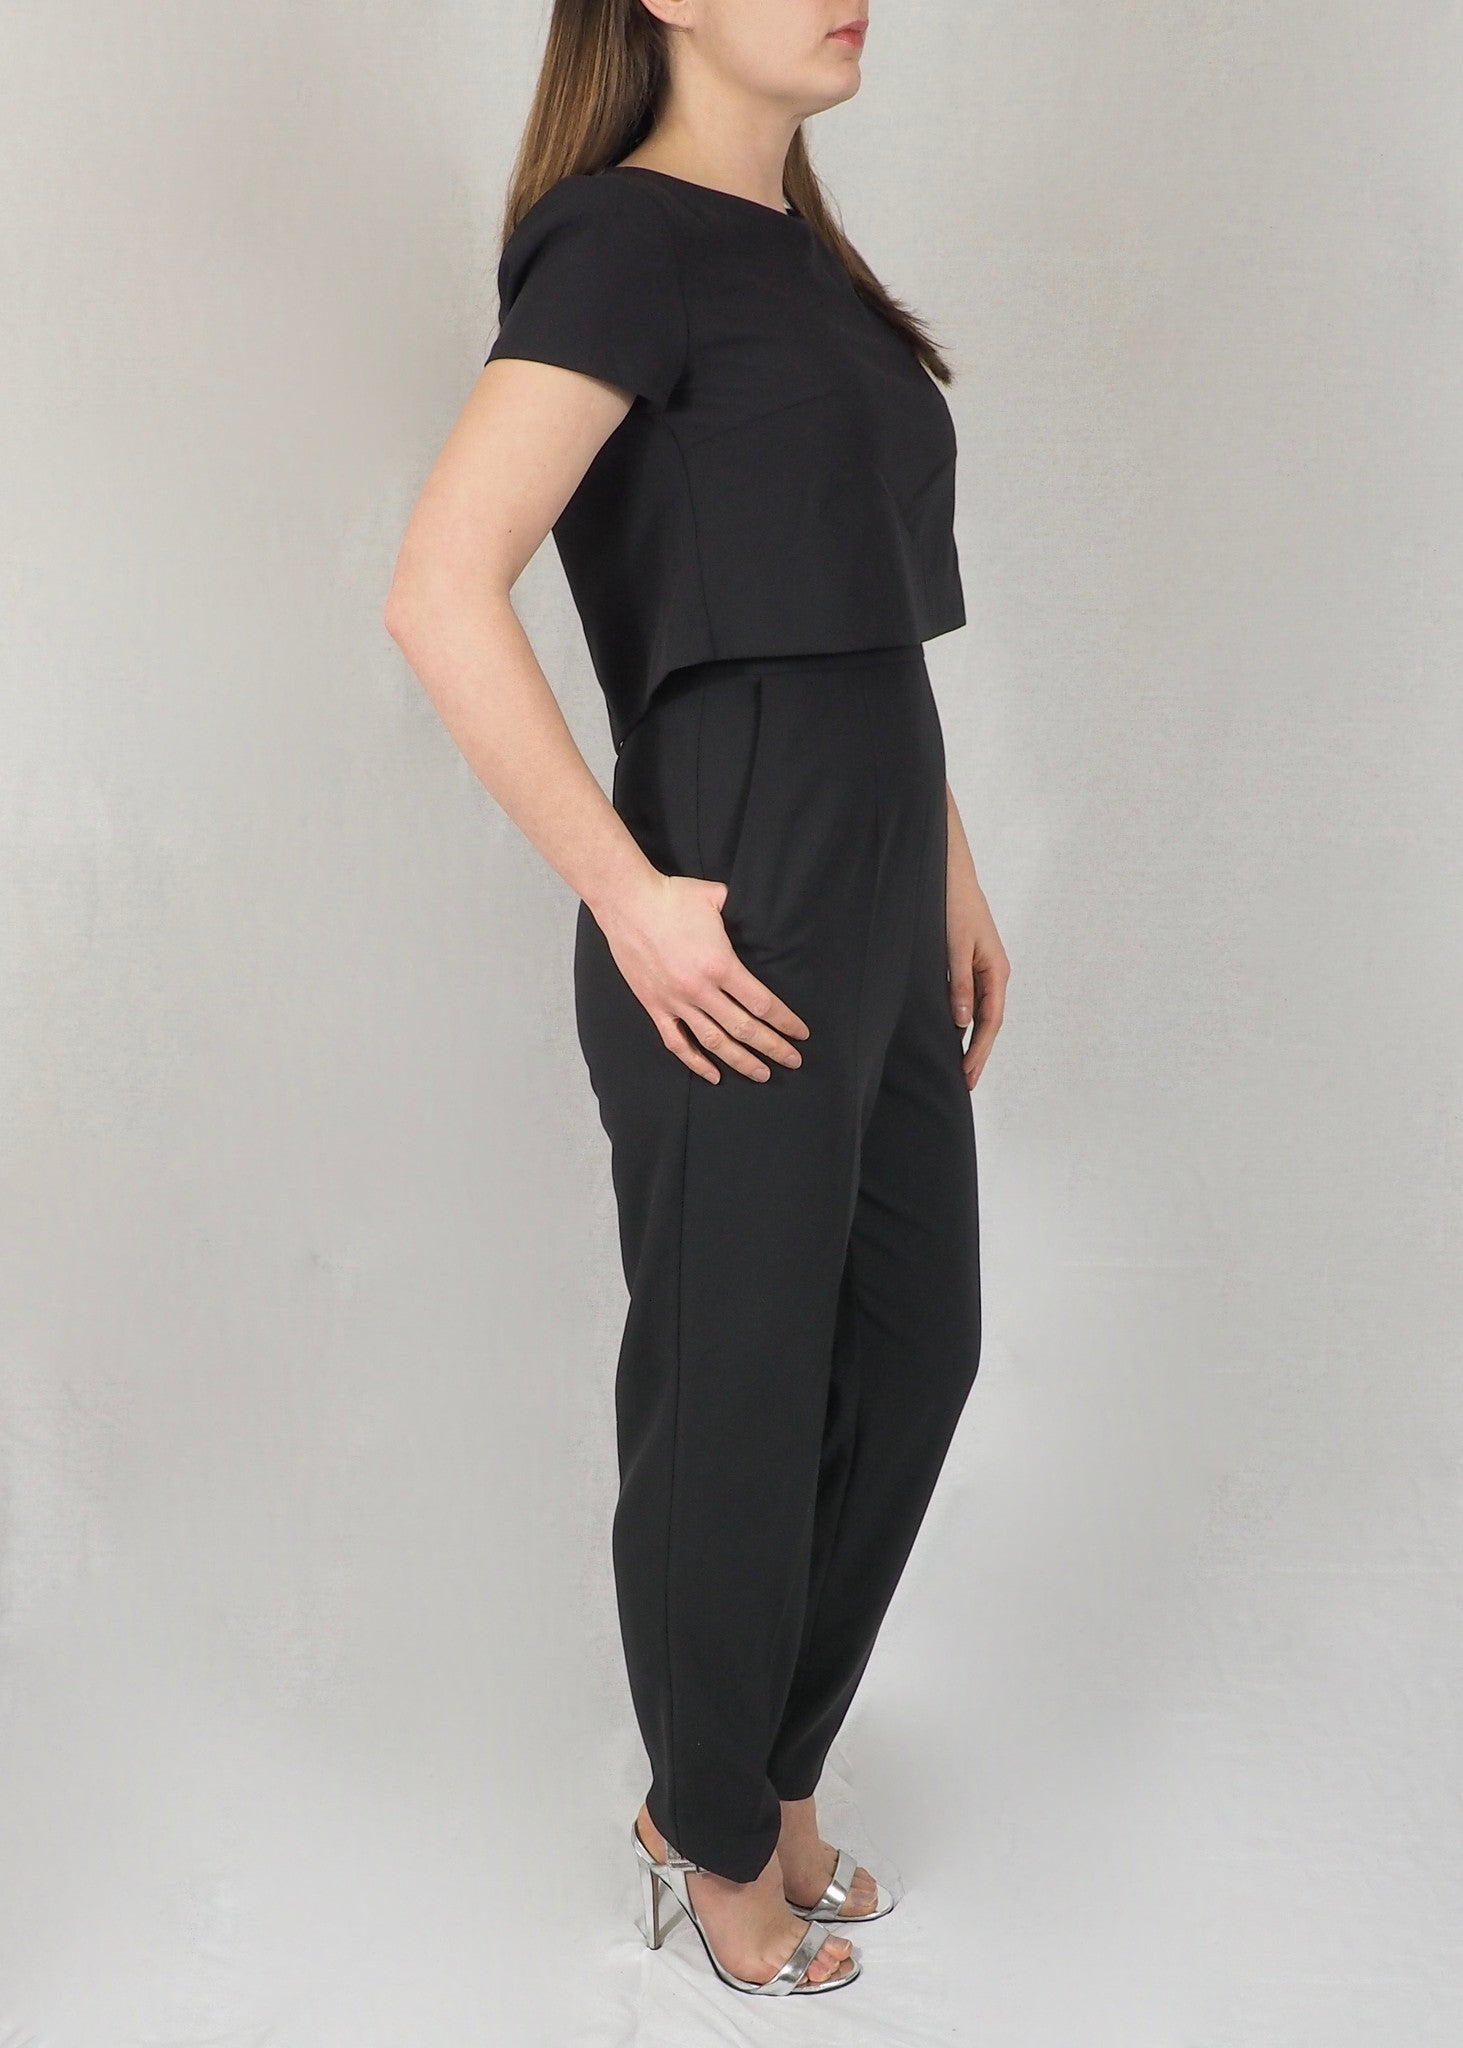 The Breastfeeding Jumpsuit - Black